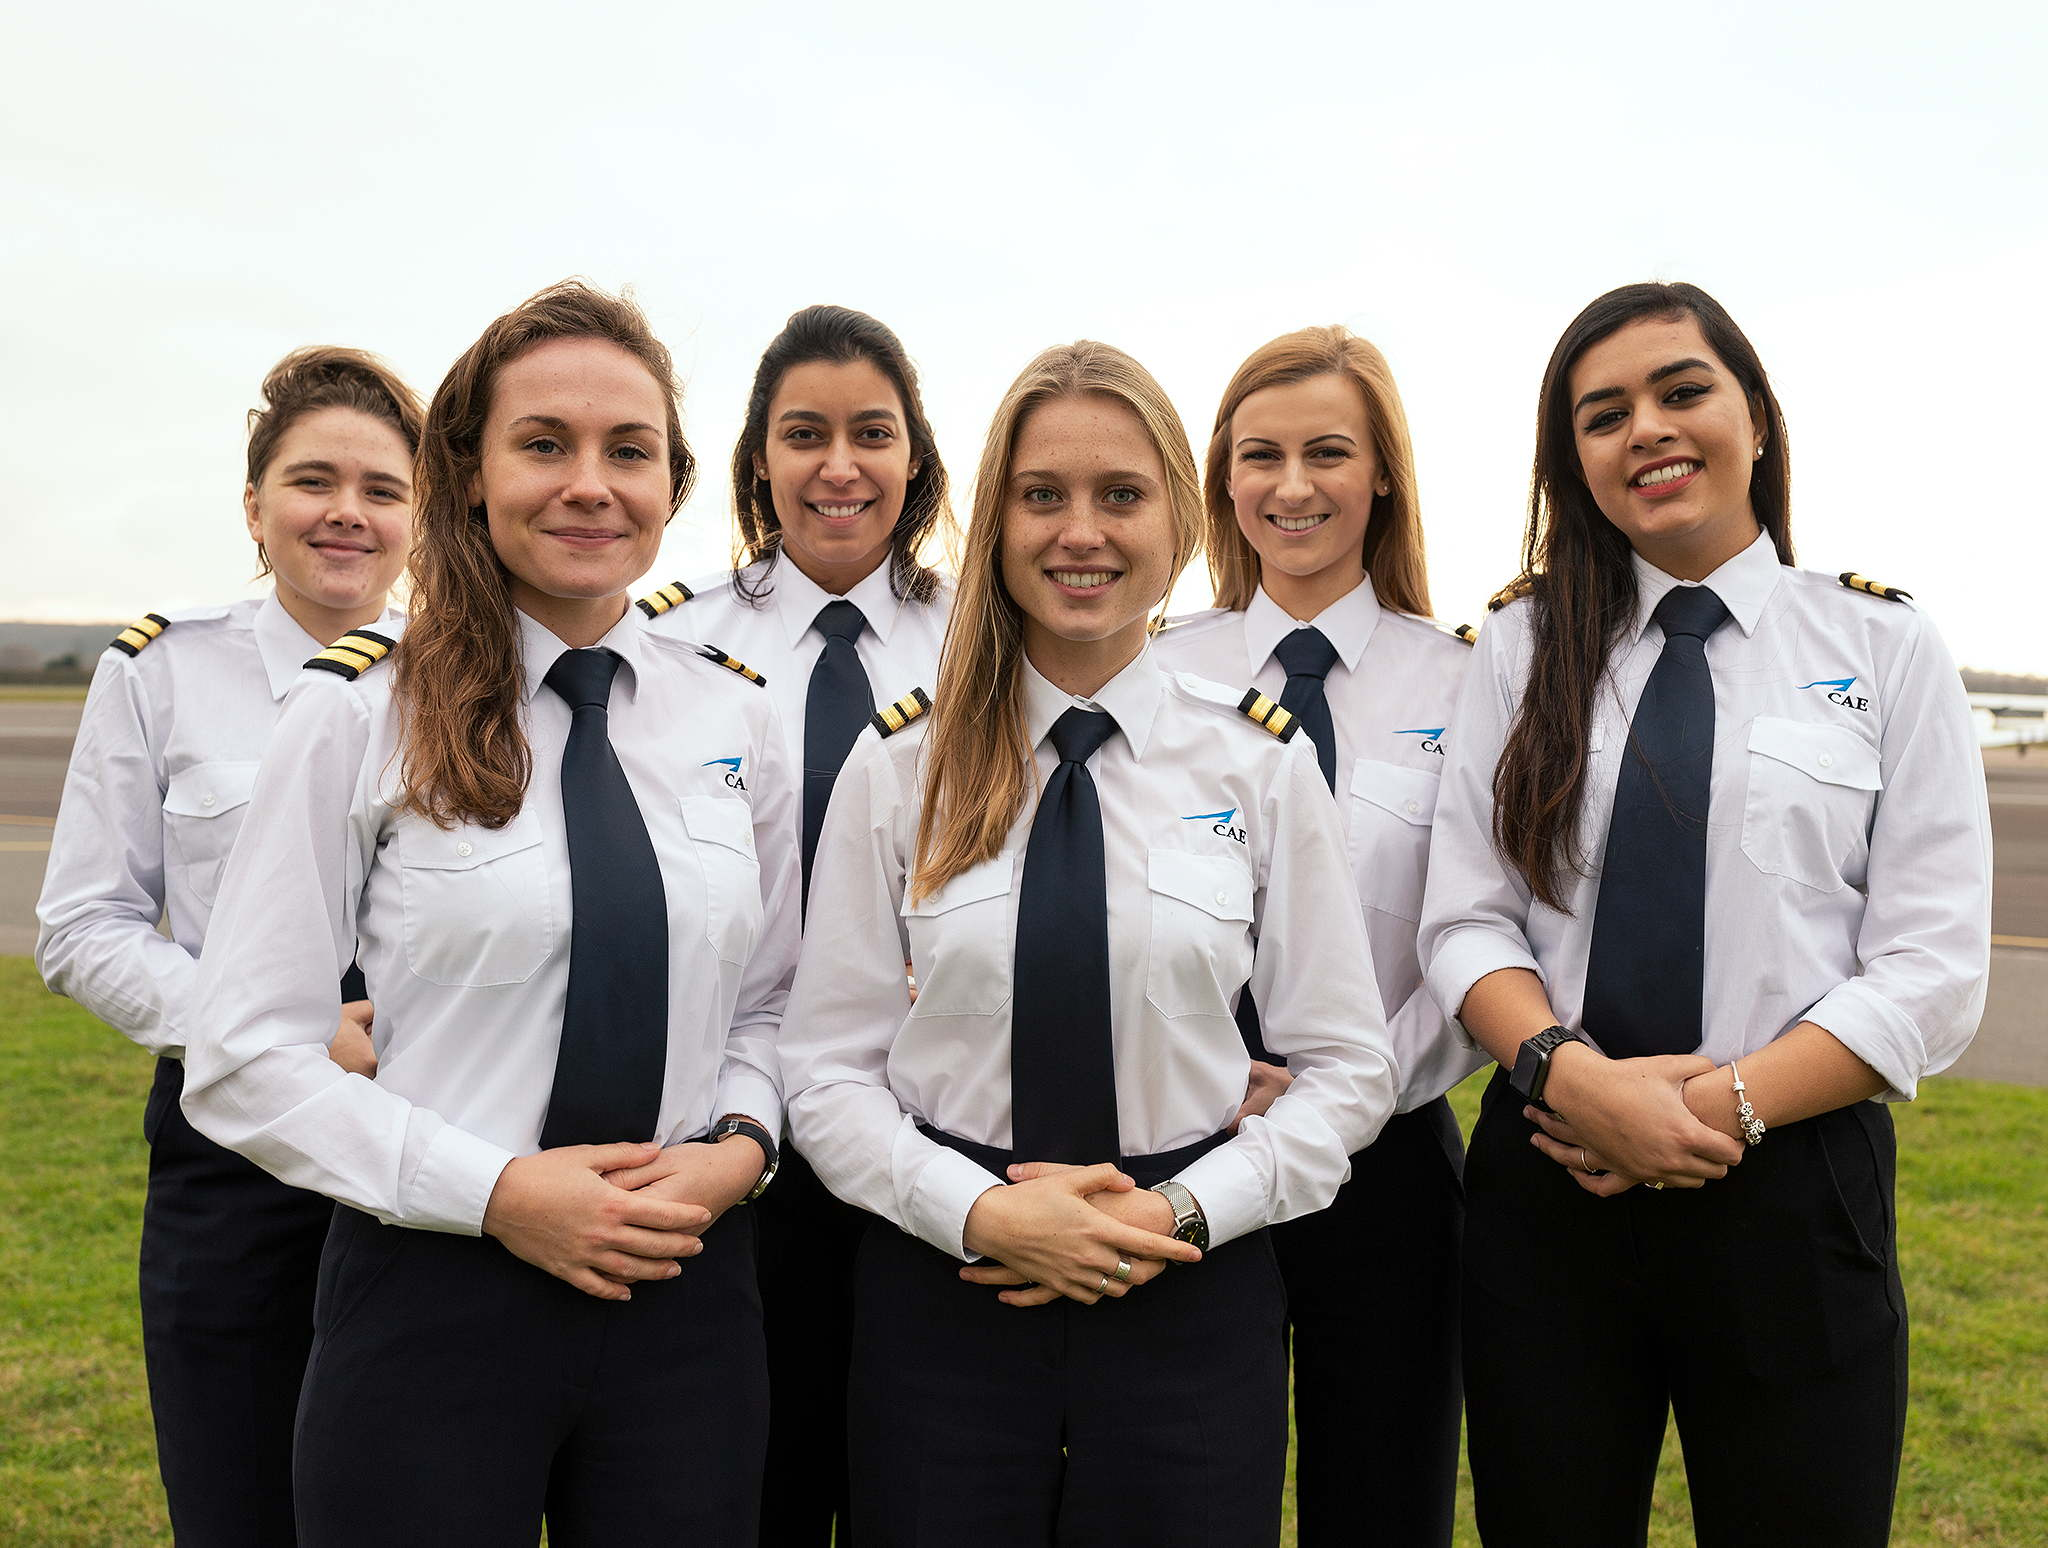 CAE women pilot scholarships